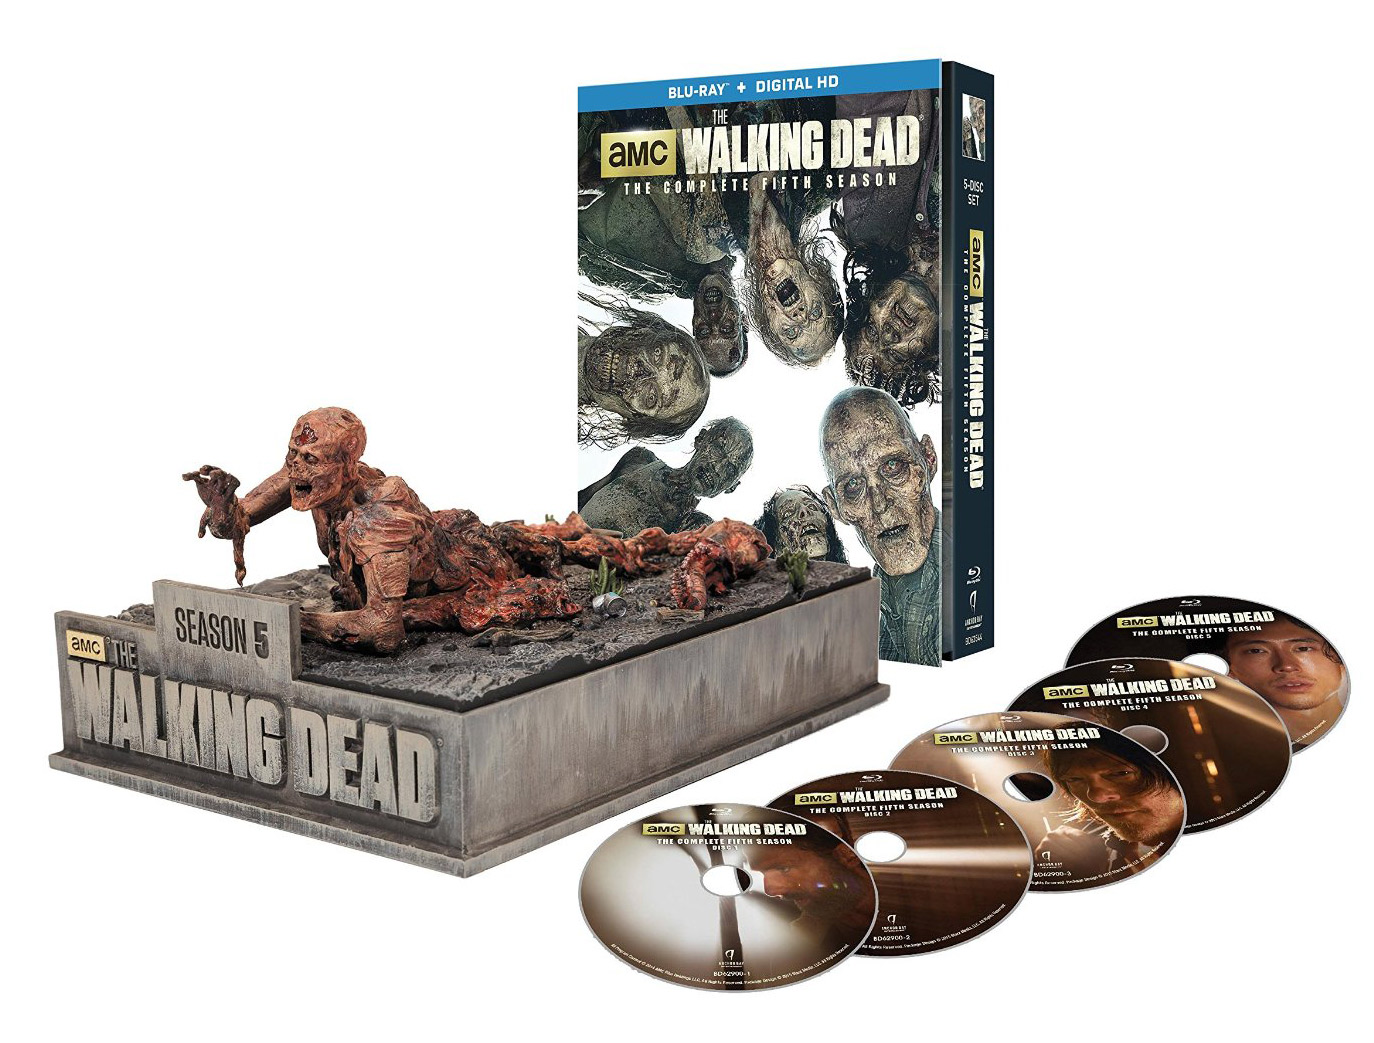 walking-dead-season-5-limited-edition-so-percent-discount-sale-amazon-com